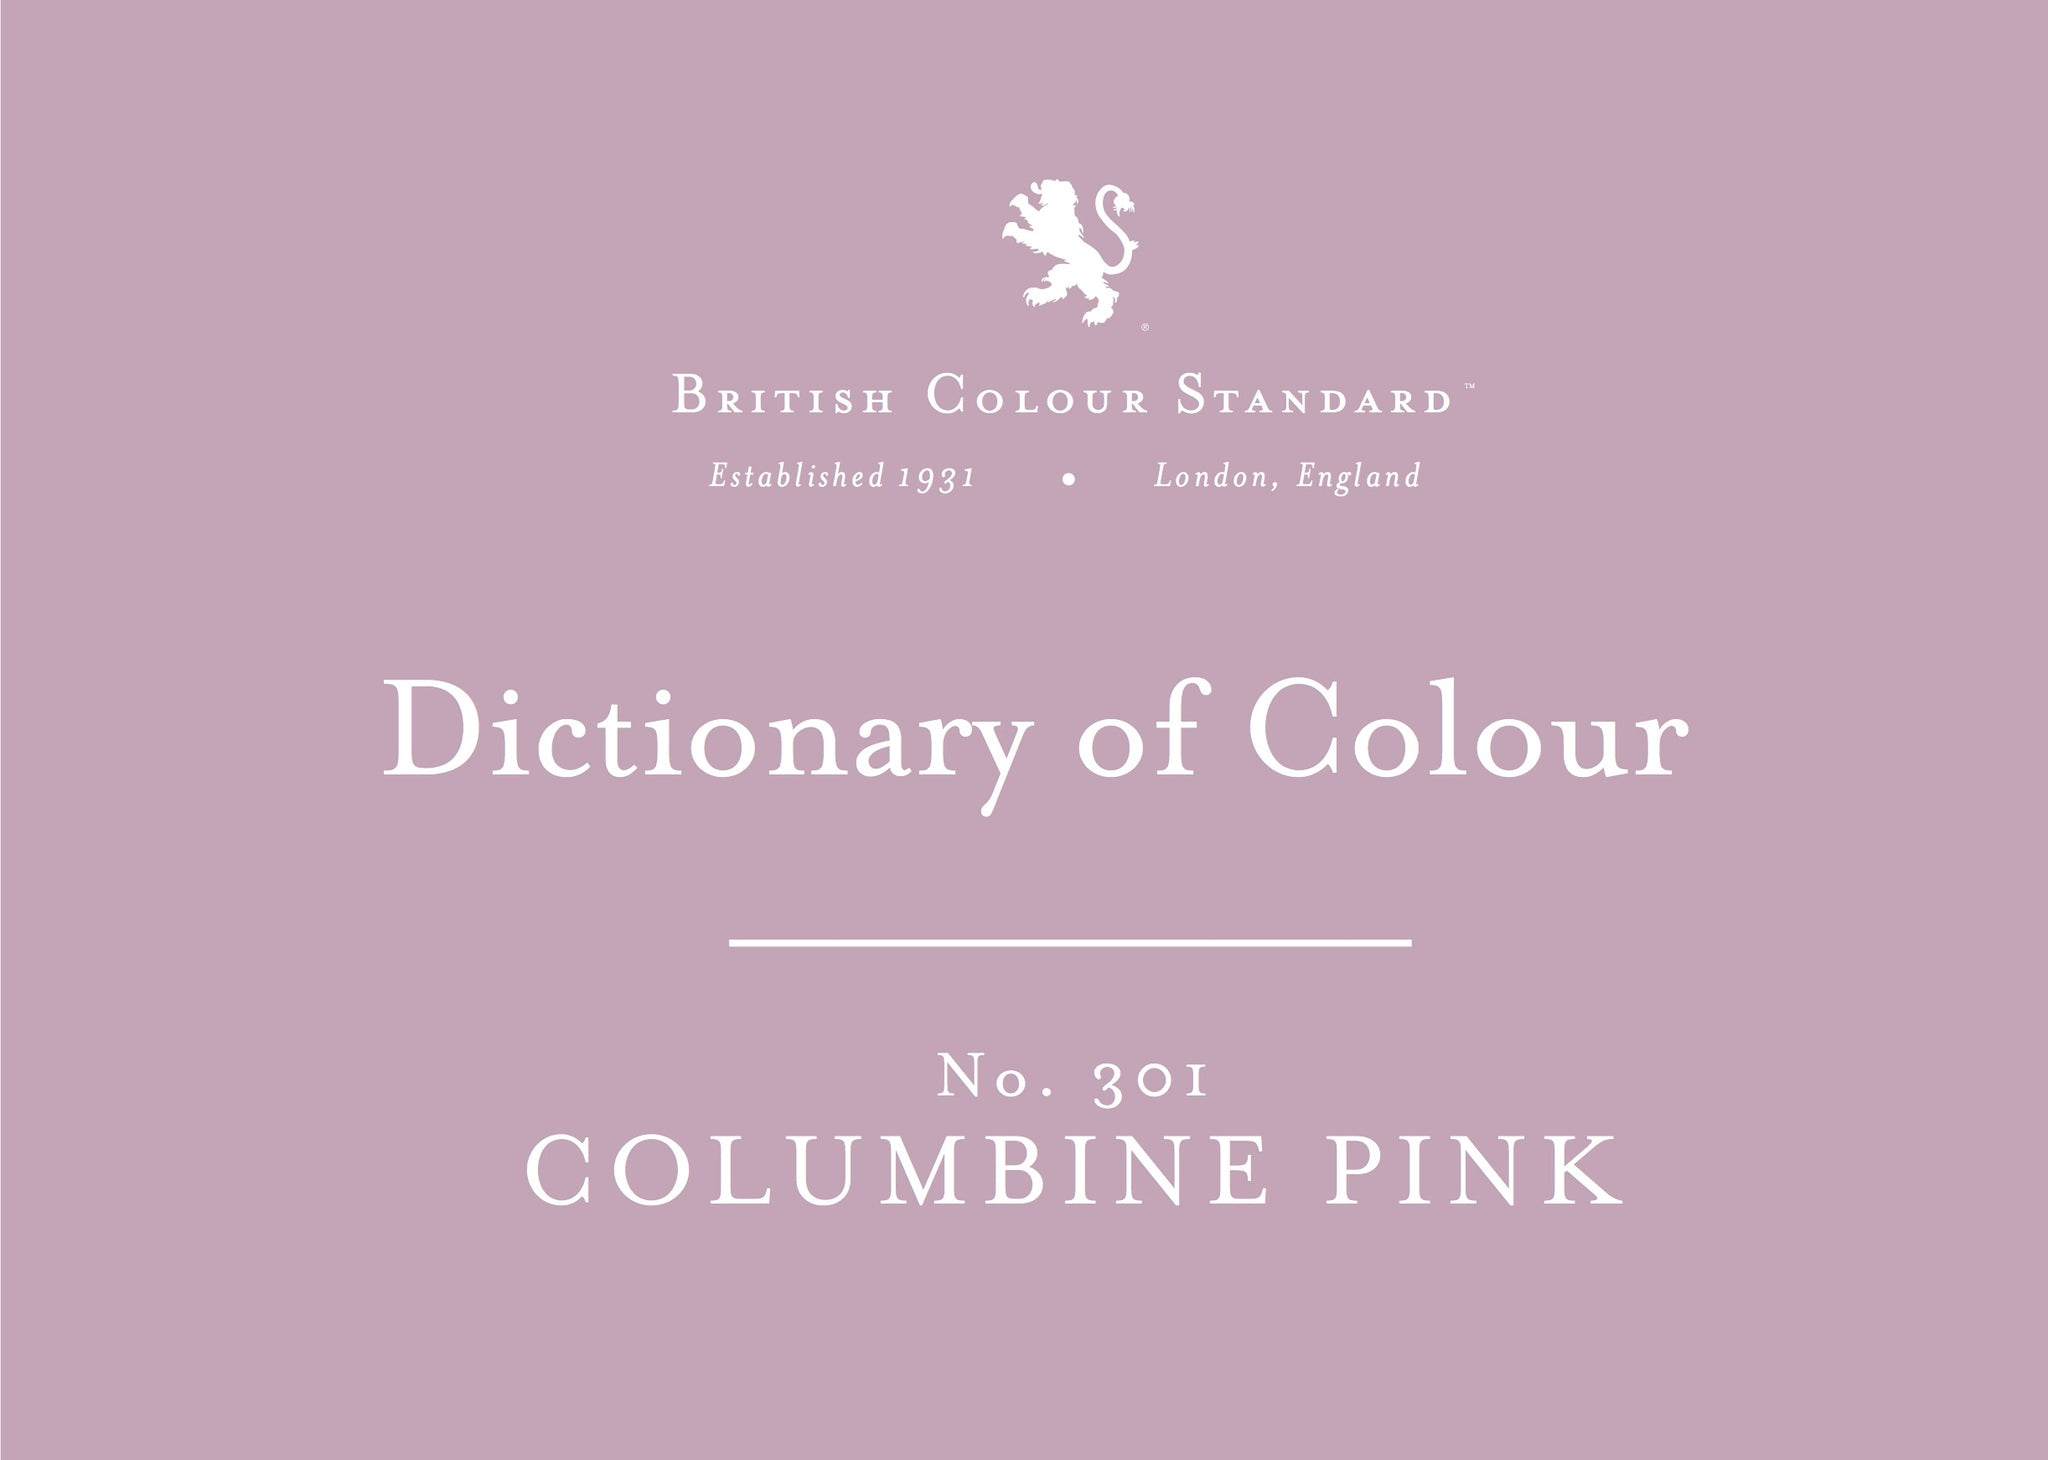 BRITISH COLOUR STANDARD - Columbine Pink No. 301